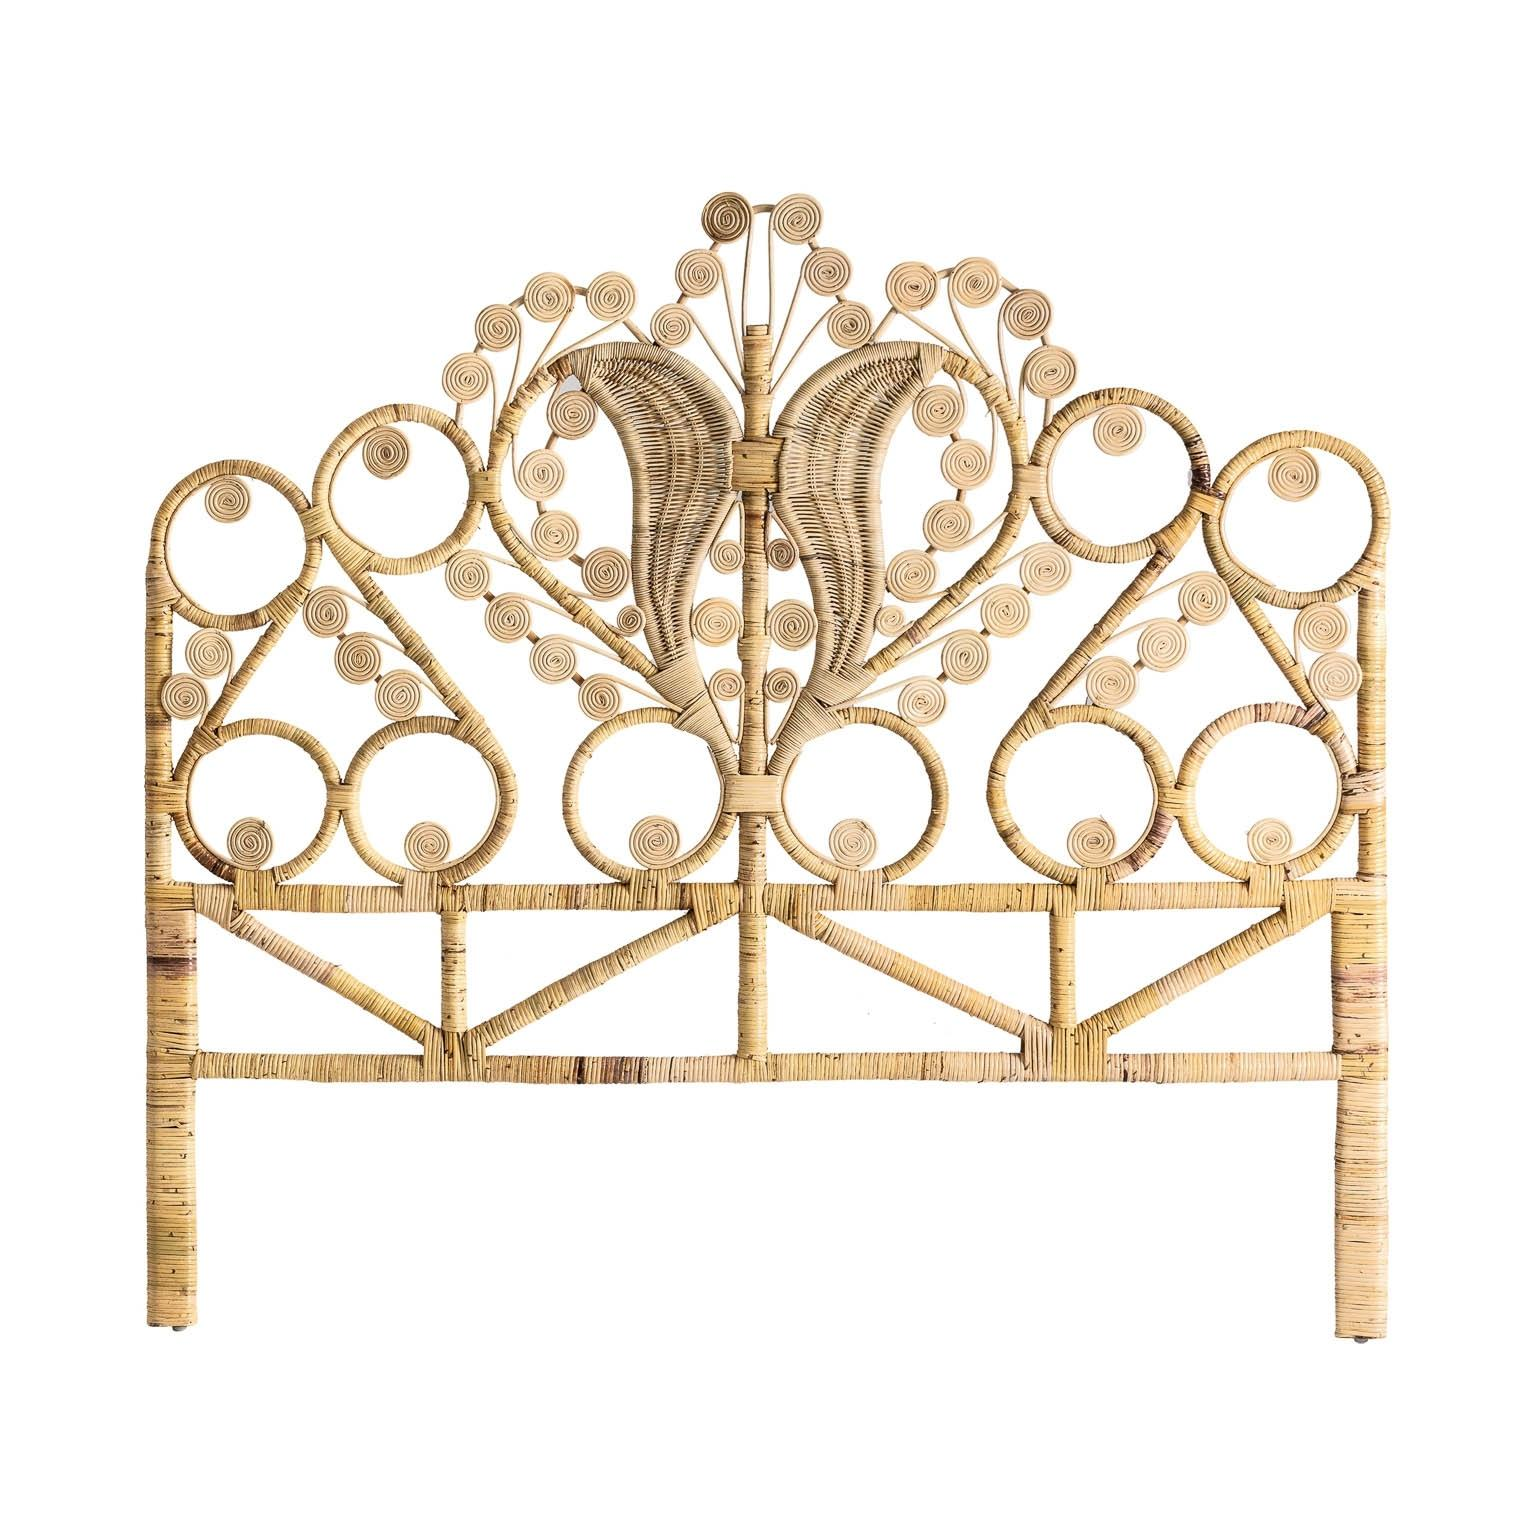 Rattan And Wicker Peacock Queen Size Headboard For Sale At 1stdibs